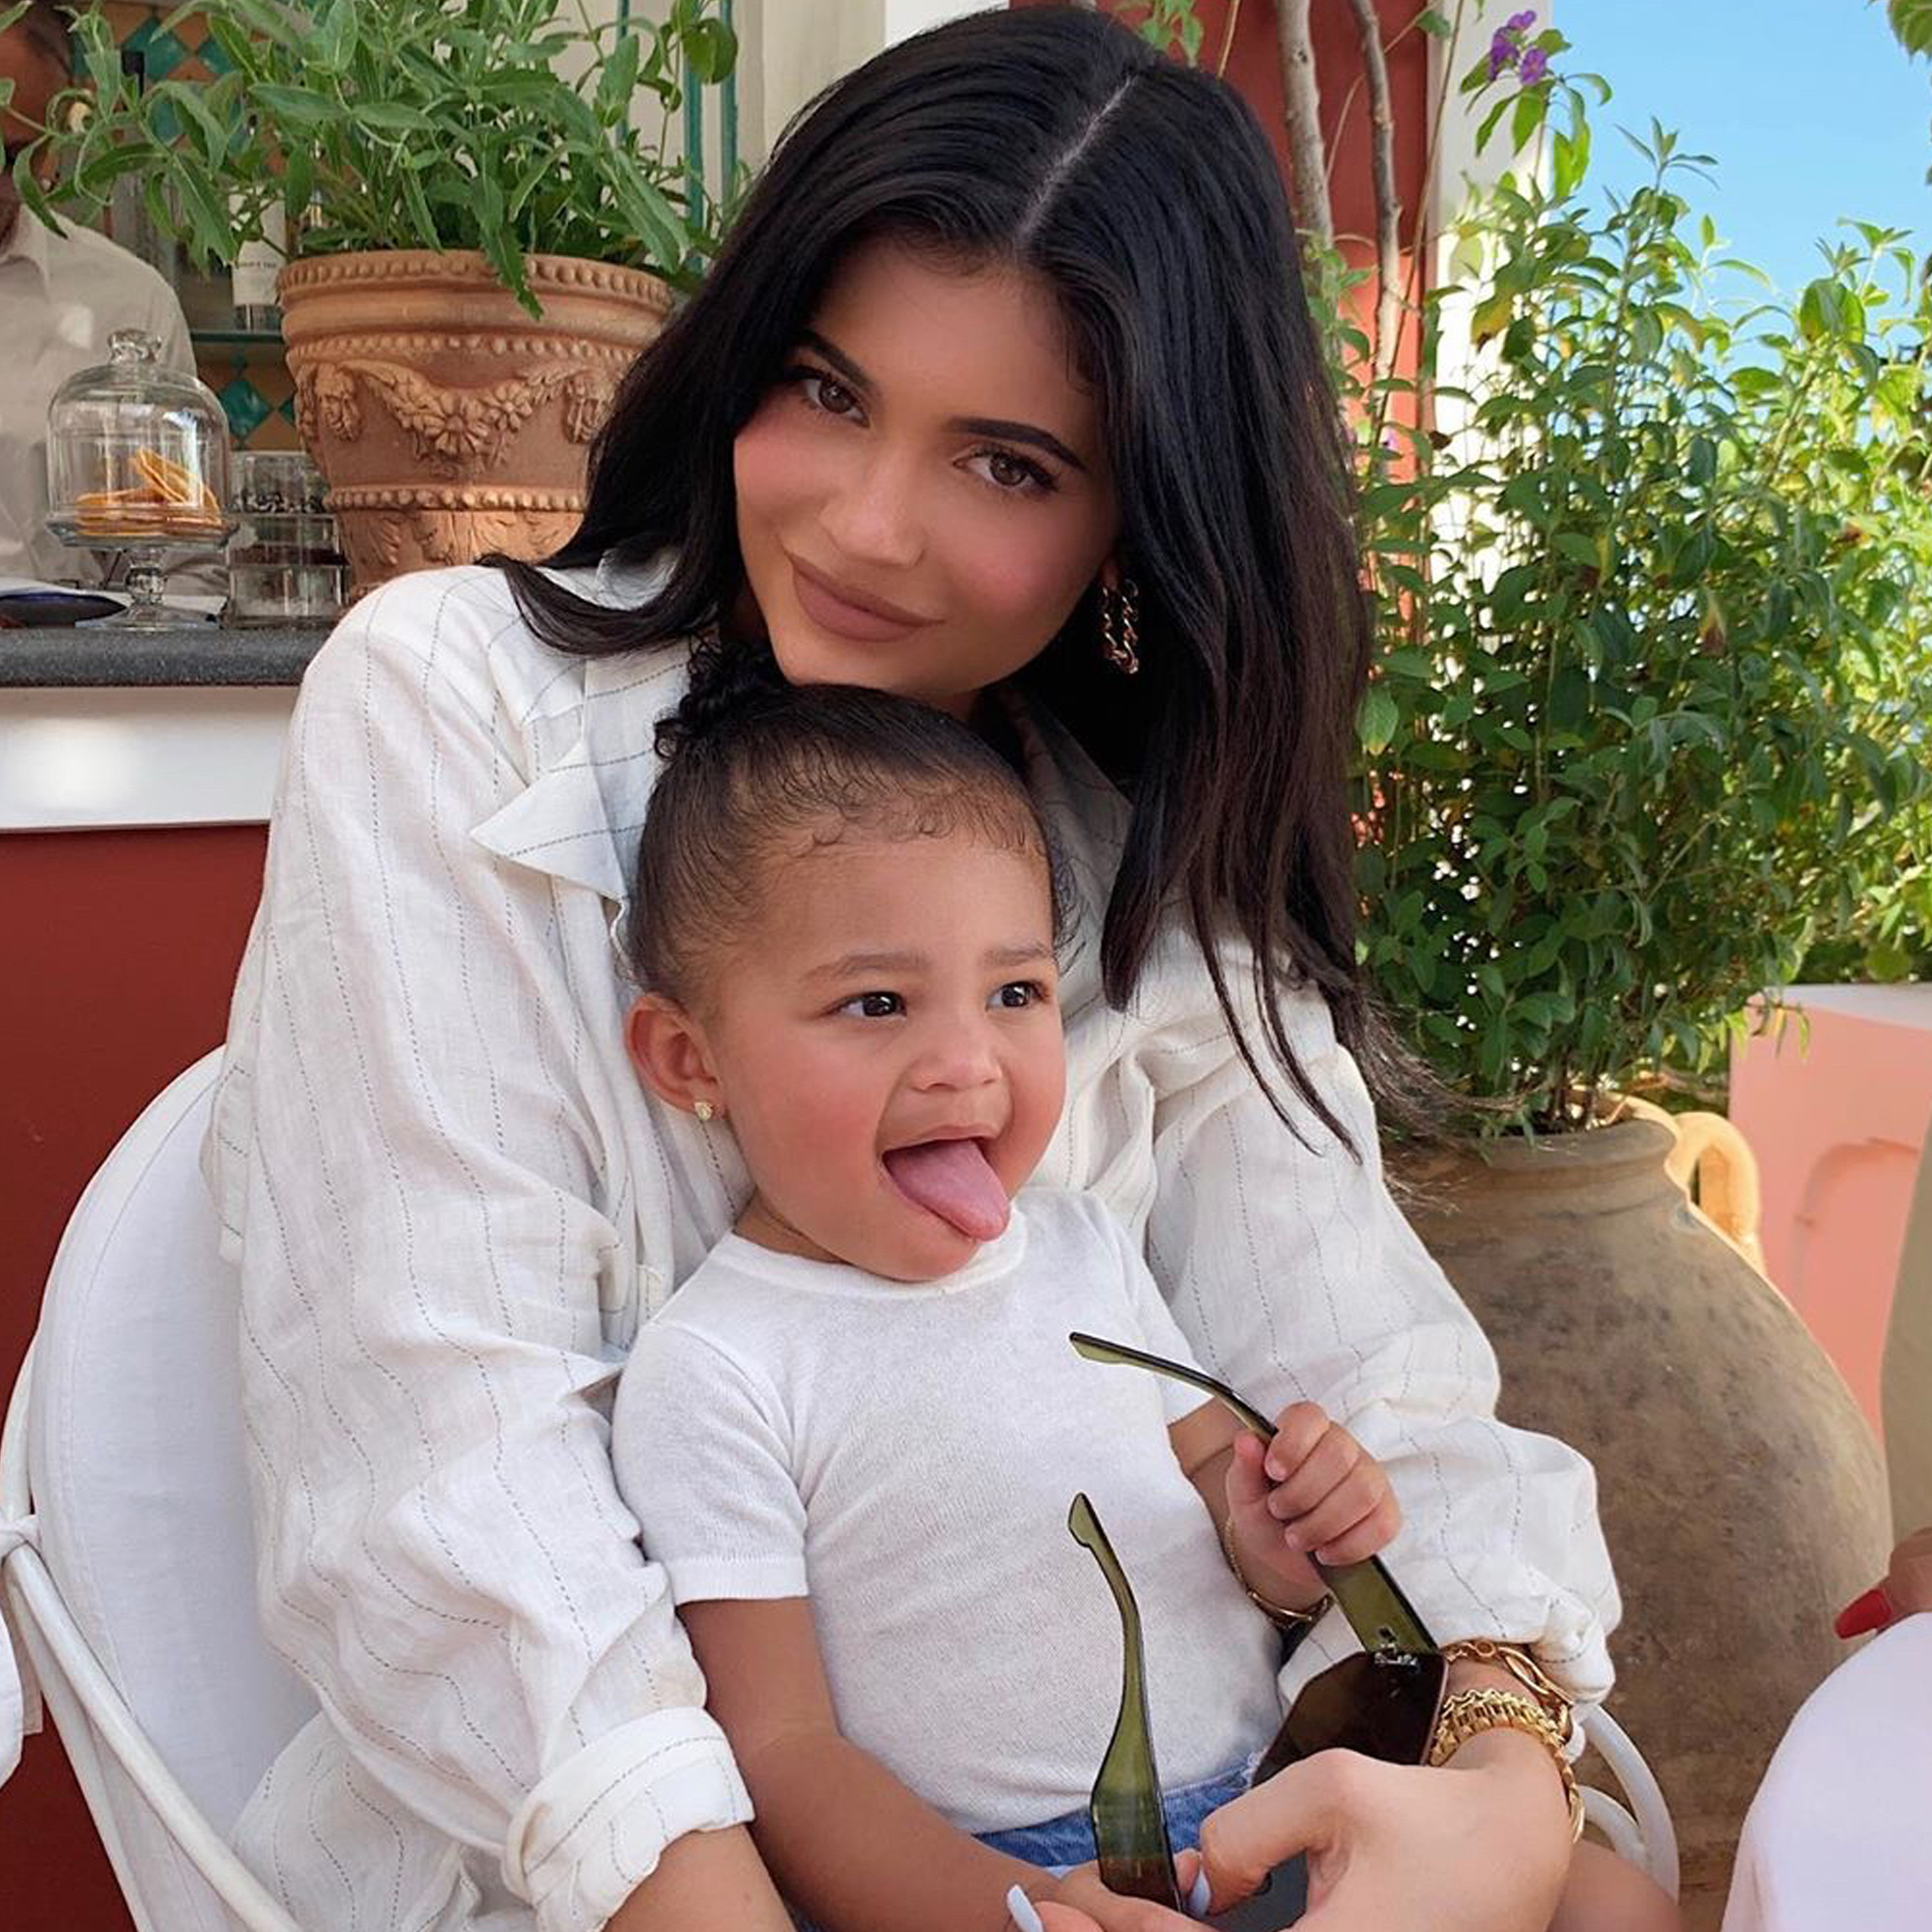 Kylie Jenner Blows Fans' Minds With Footage From Stormi Webster's Birthday Party